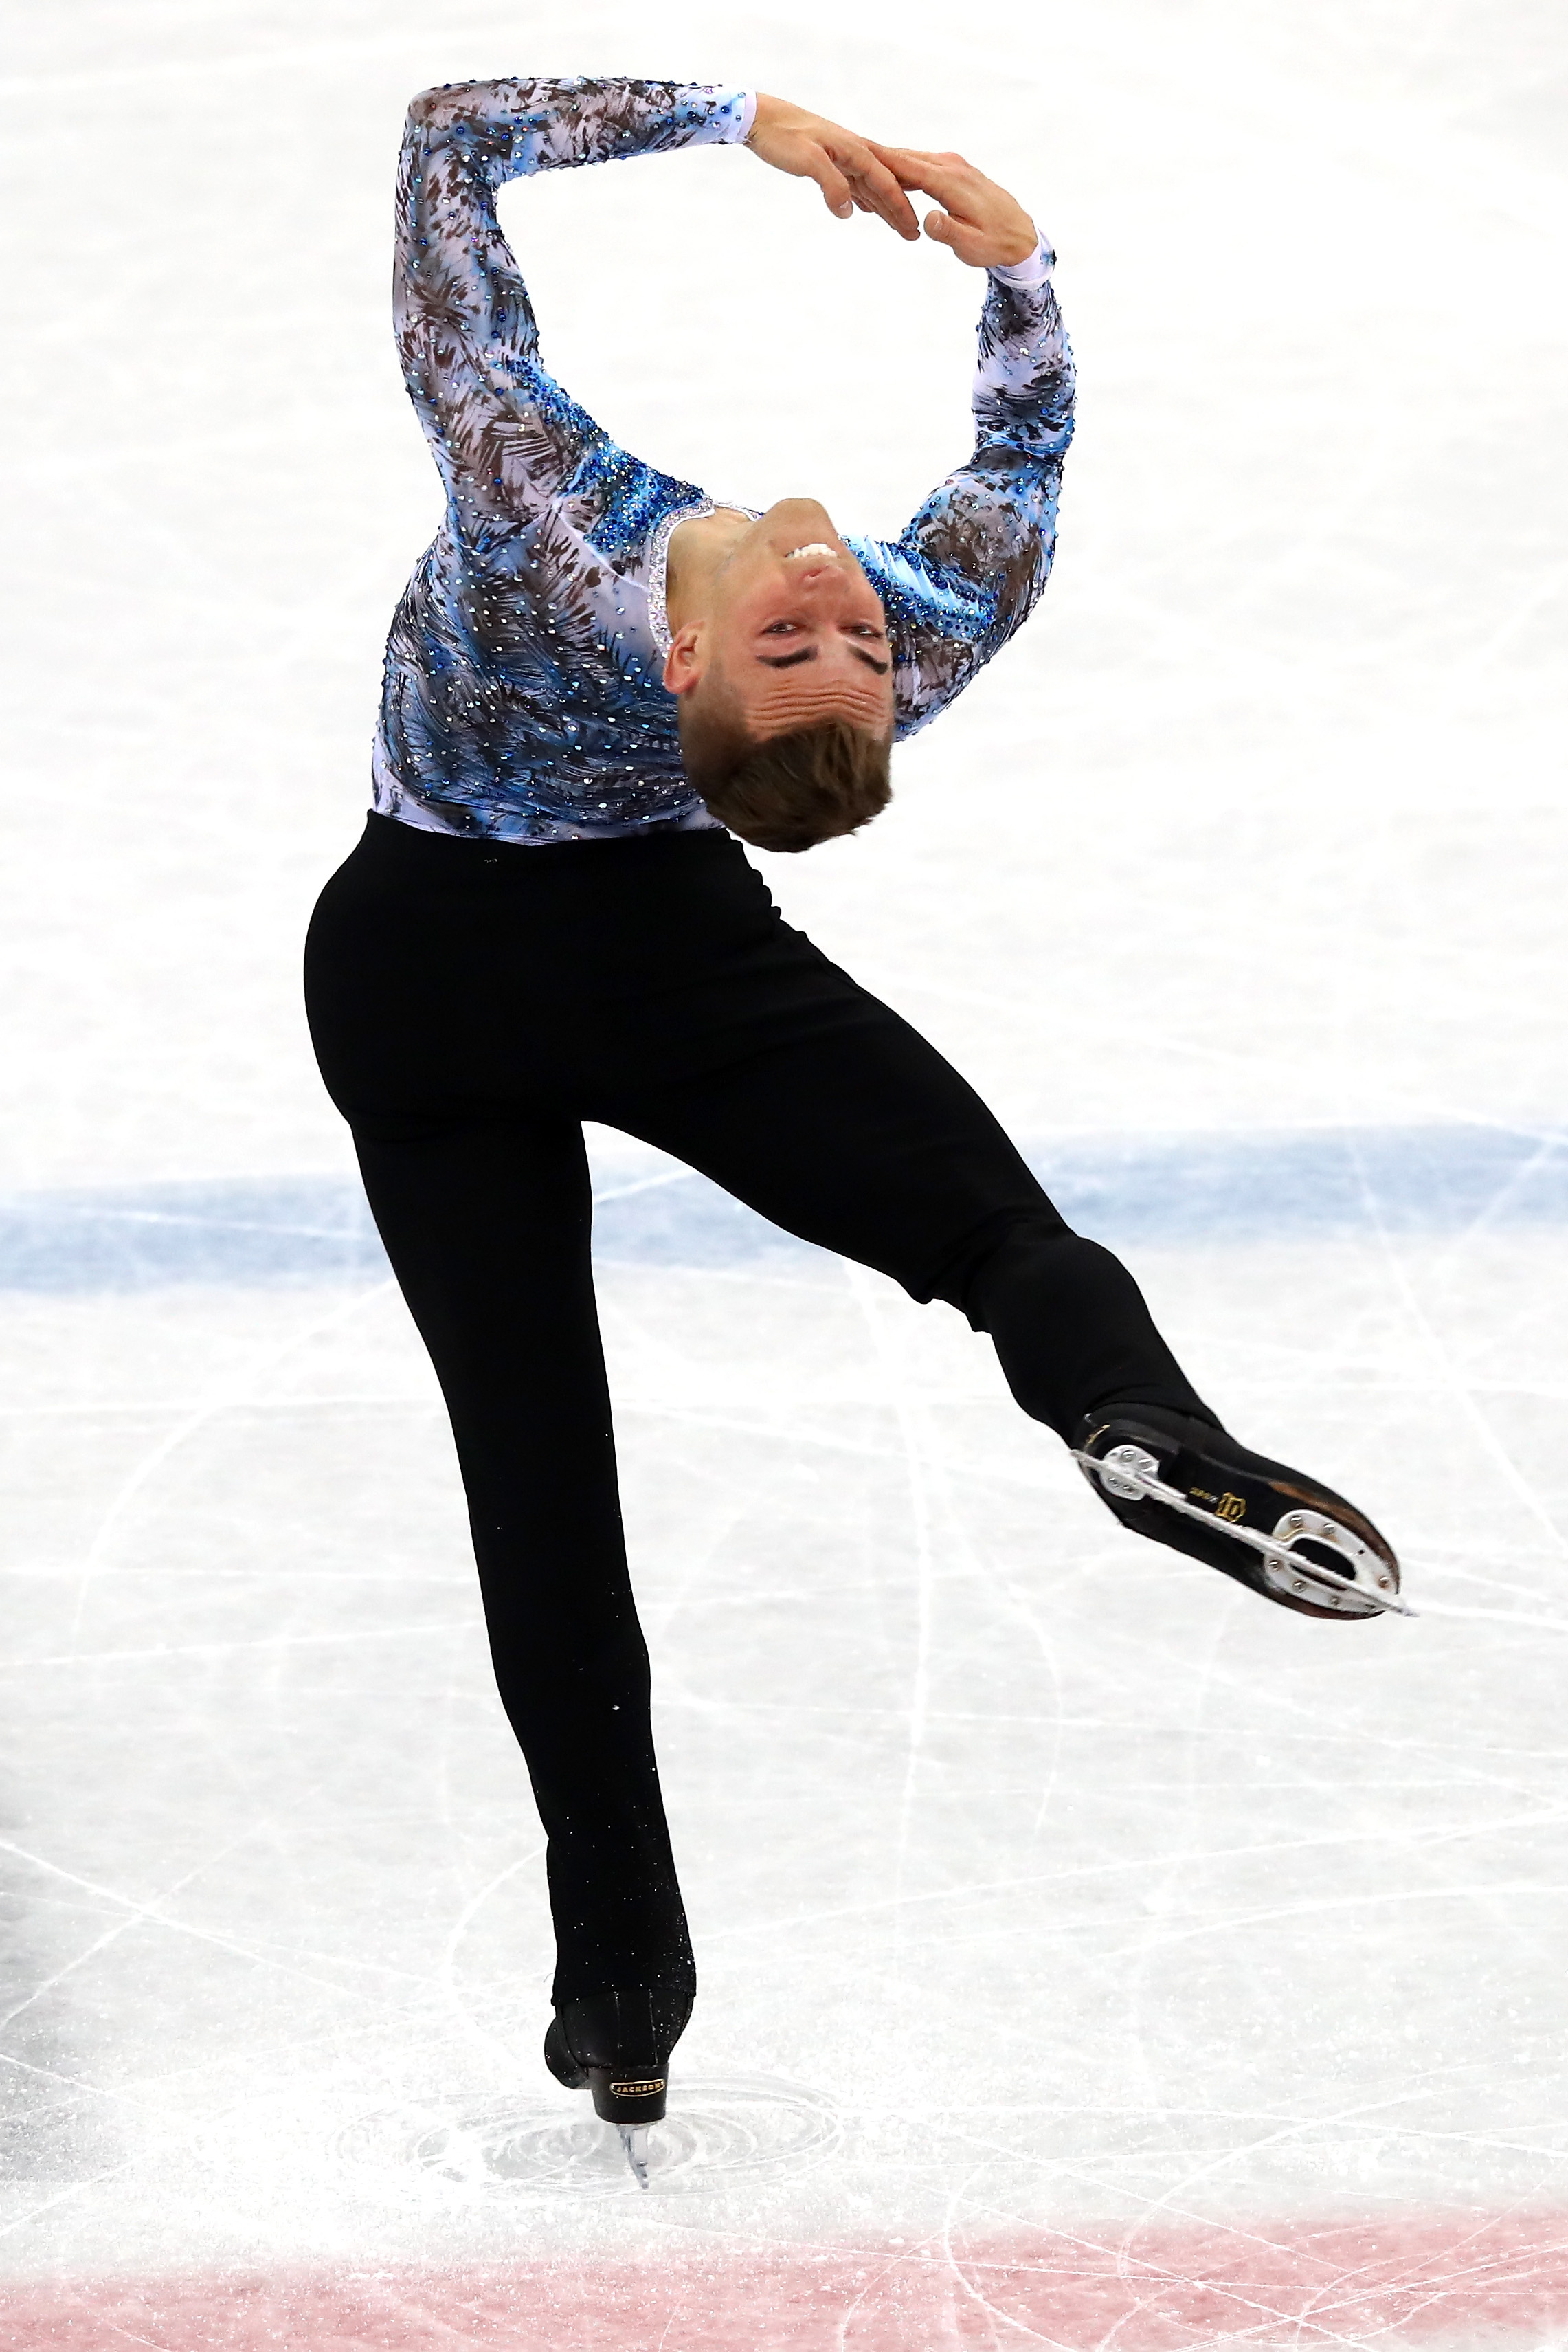 Adam Rippon of the United States competes in the Figure Skating Team Event – Men's Single Free Skating on day three of the PyeongChang 2018 Winter Olympic Games at Gangneung Ice Arena on Feb. 12, 2018 in Gangneung, South Korea.